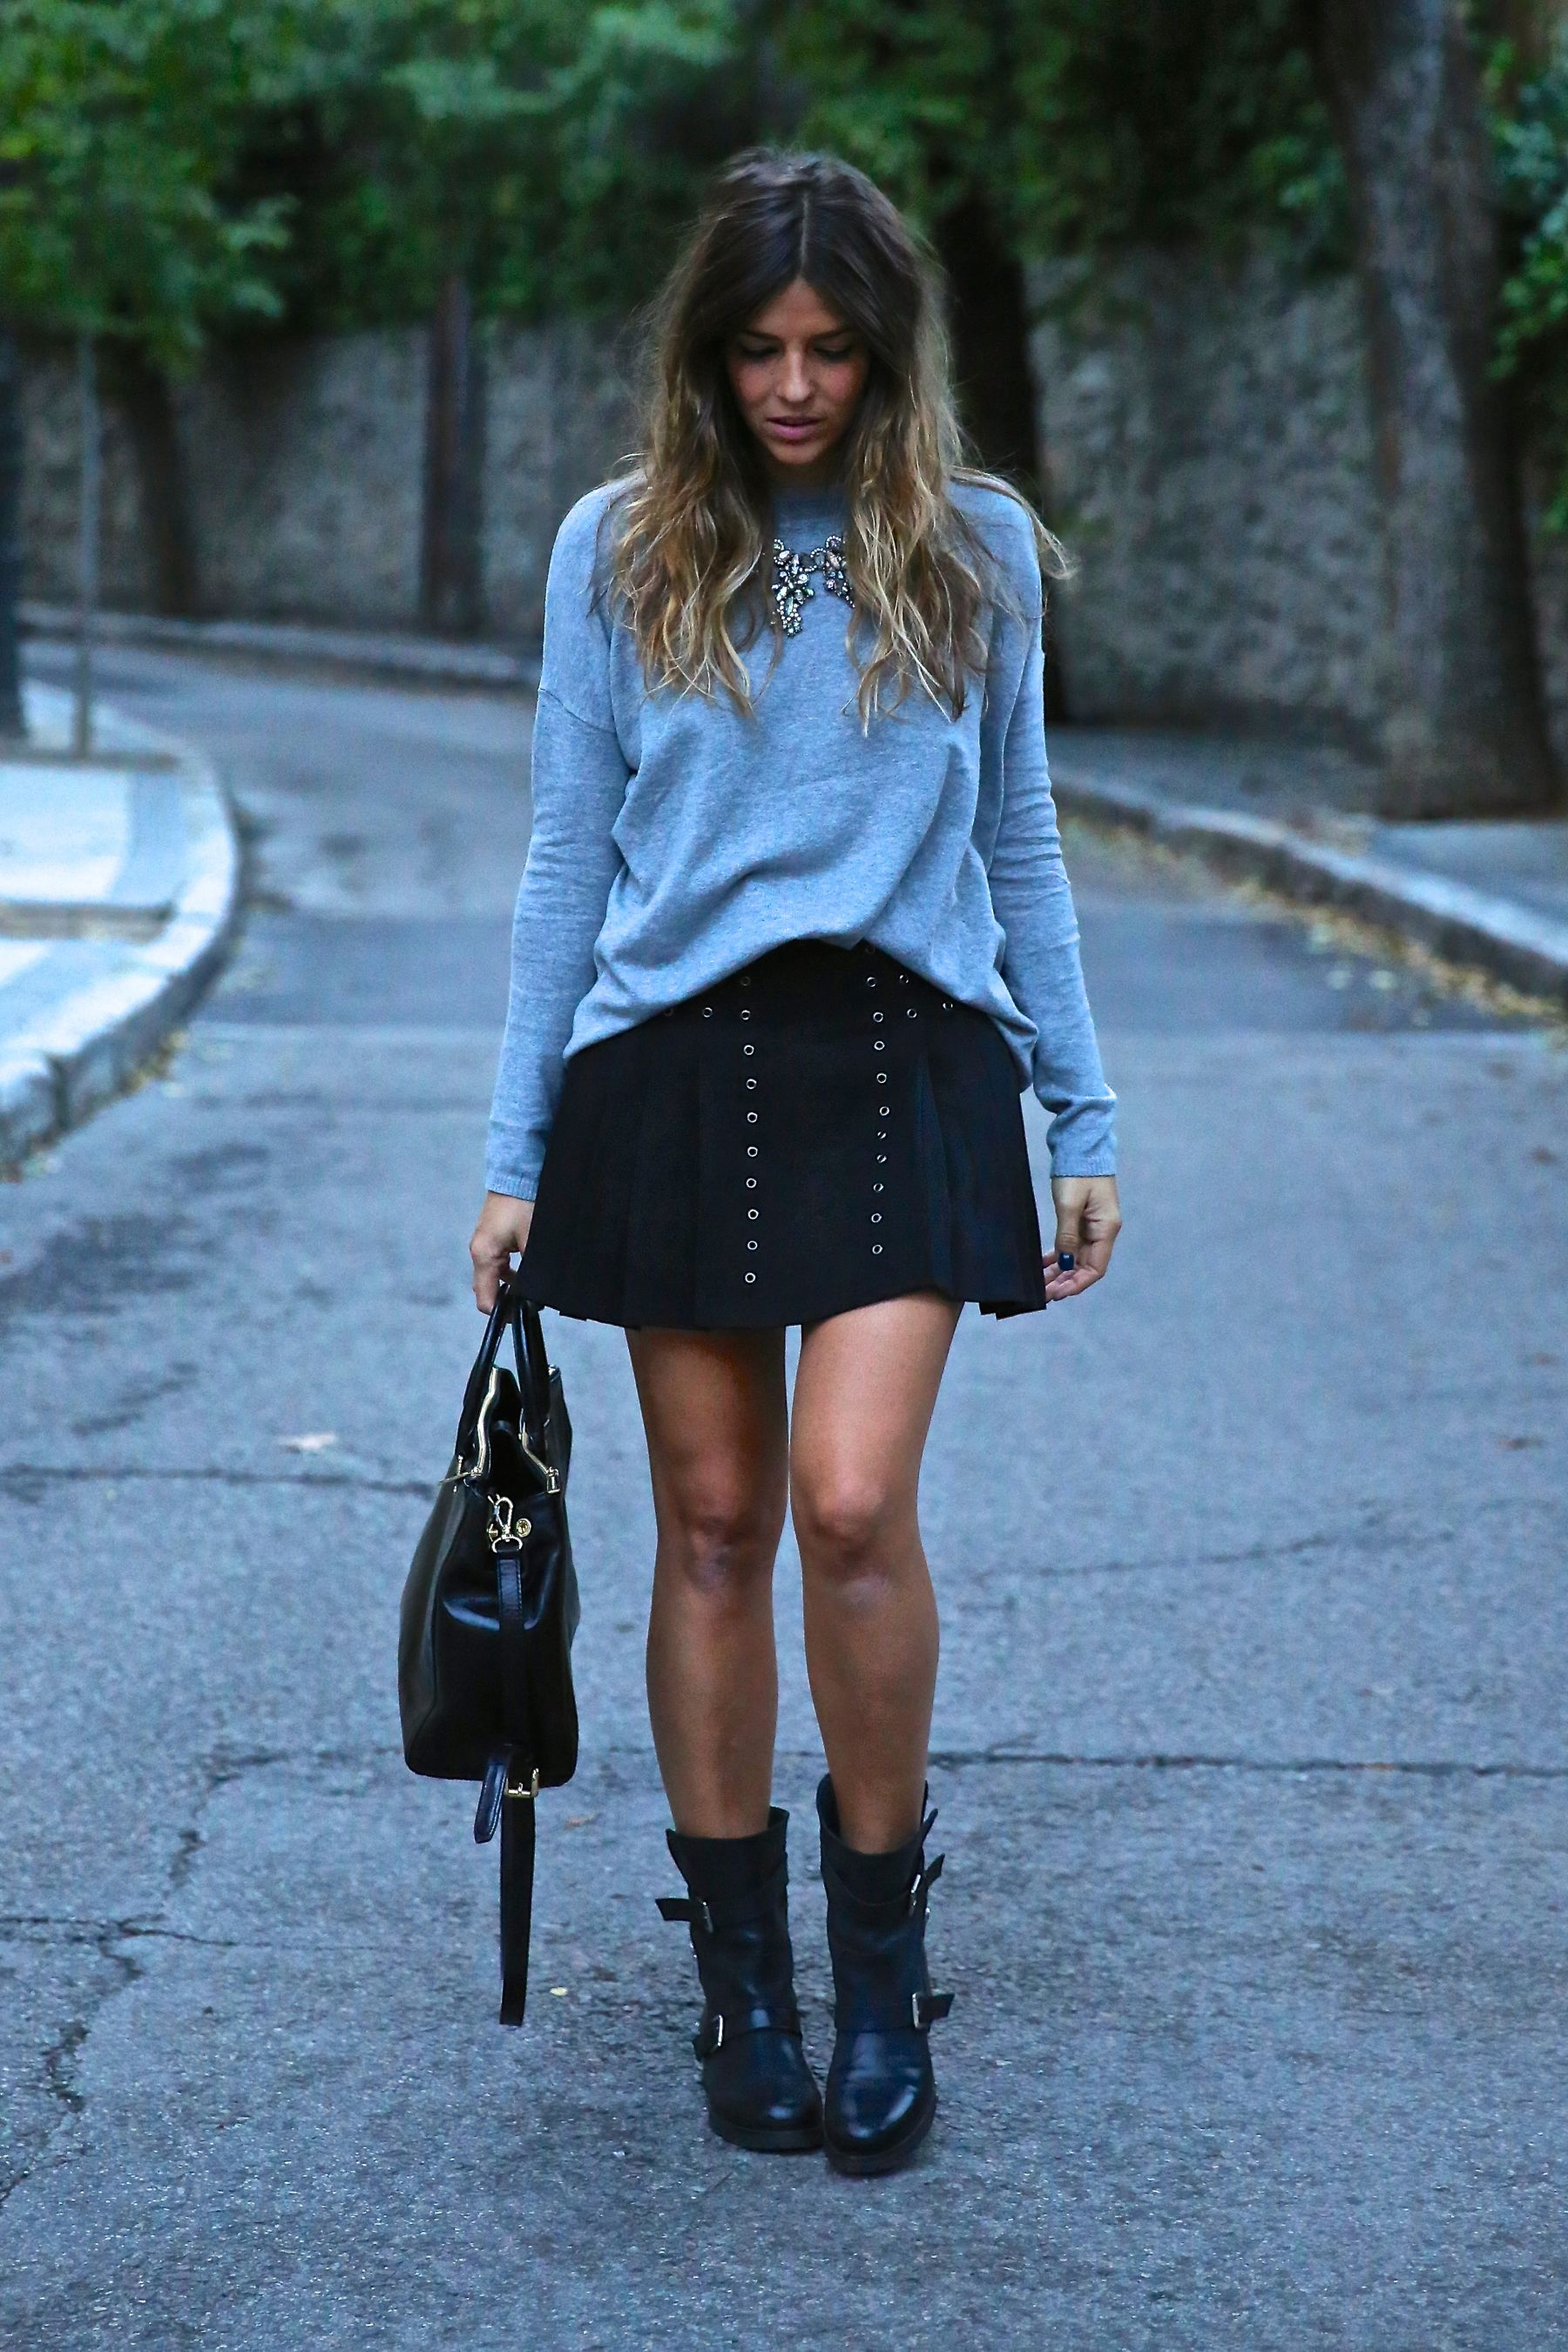 trendy_taste-look-outfit-street_style-ootd-blog-blogger-fashion_spain-moda_españa-fall_winter-otoño-rocky-botas_moteras-jersey_punto-sweater-10